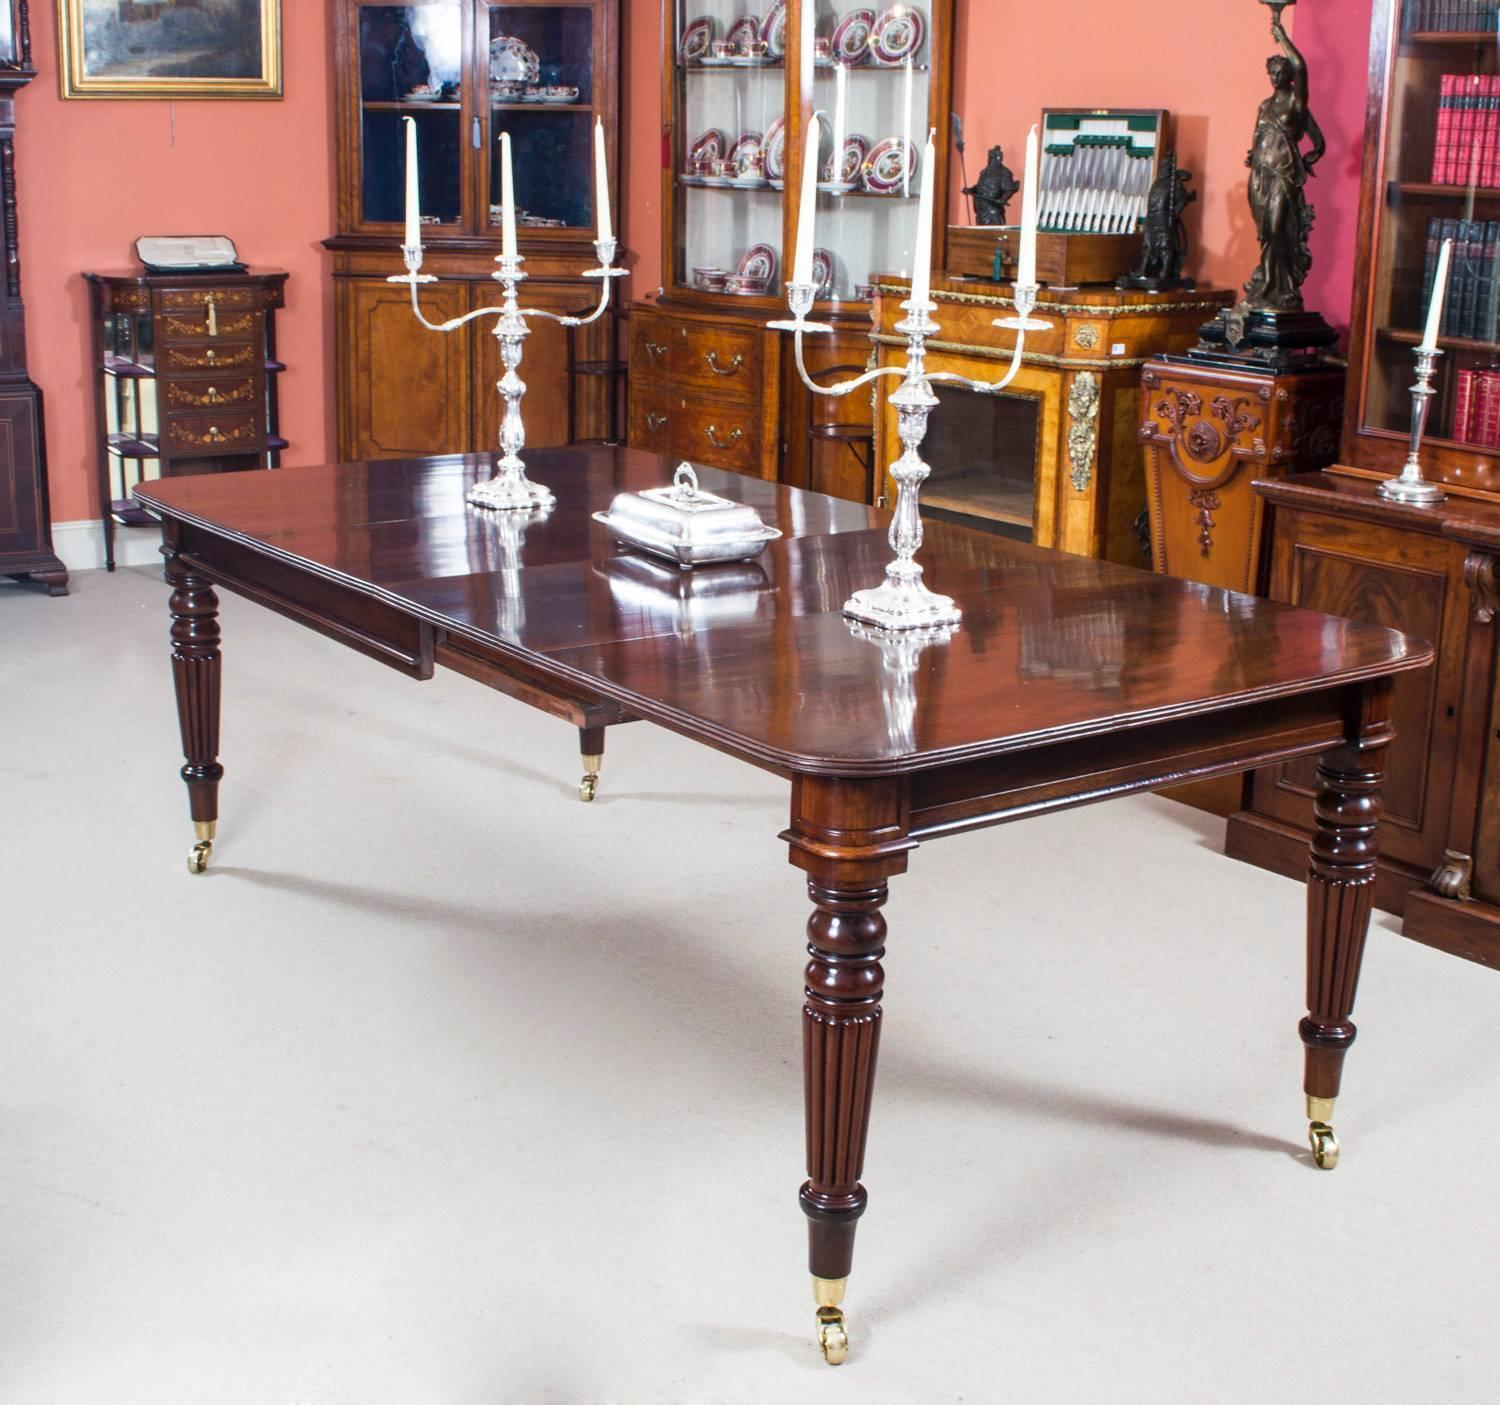 Antique Dining Room Table: Antique Regency Mahogany Dining Table Eight Balloon Back